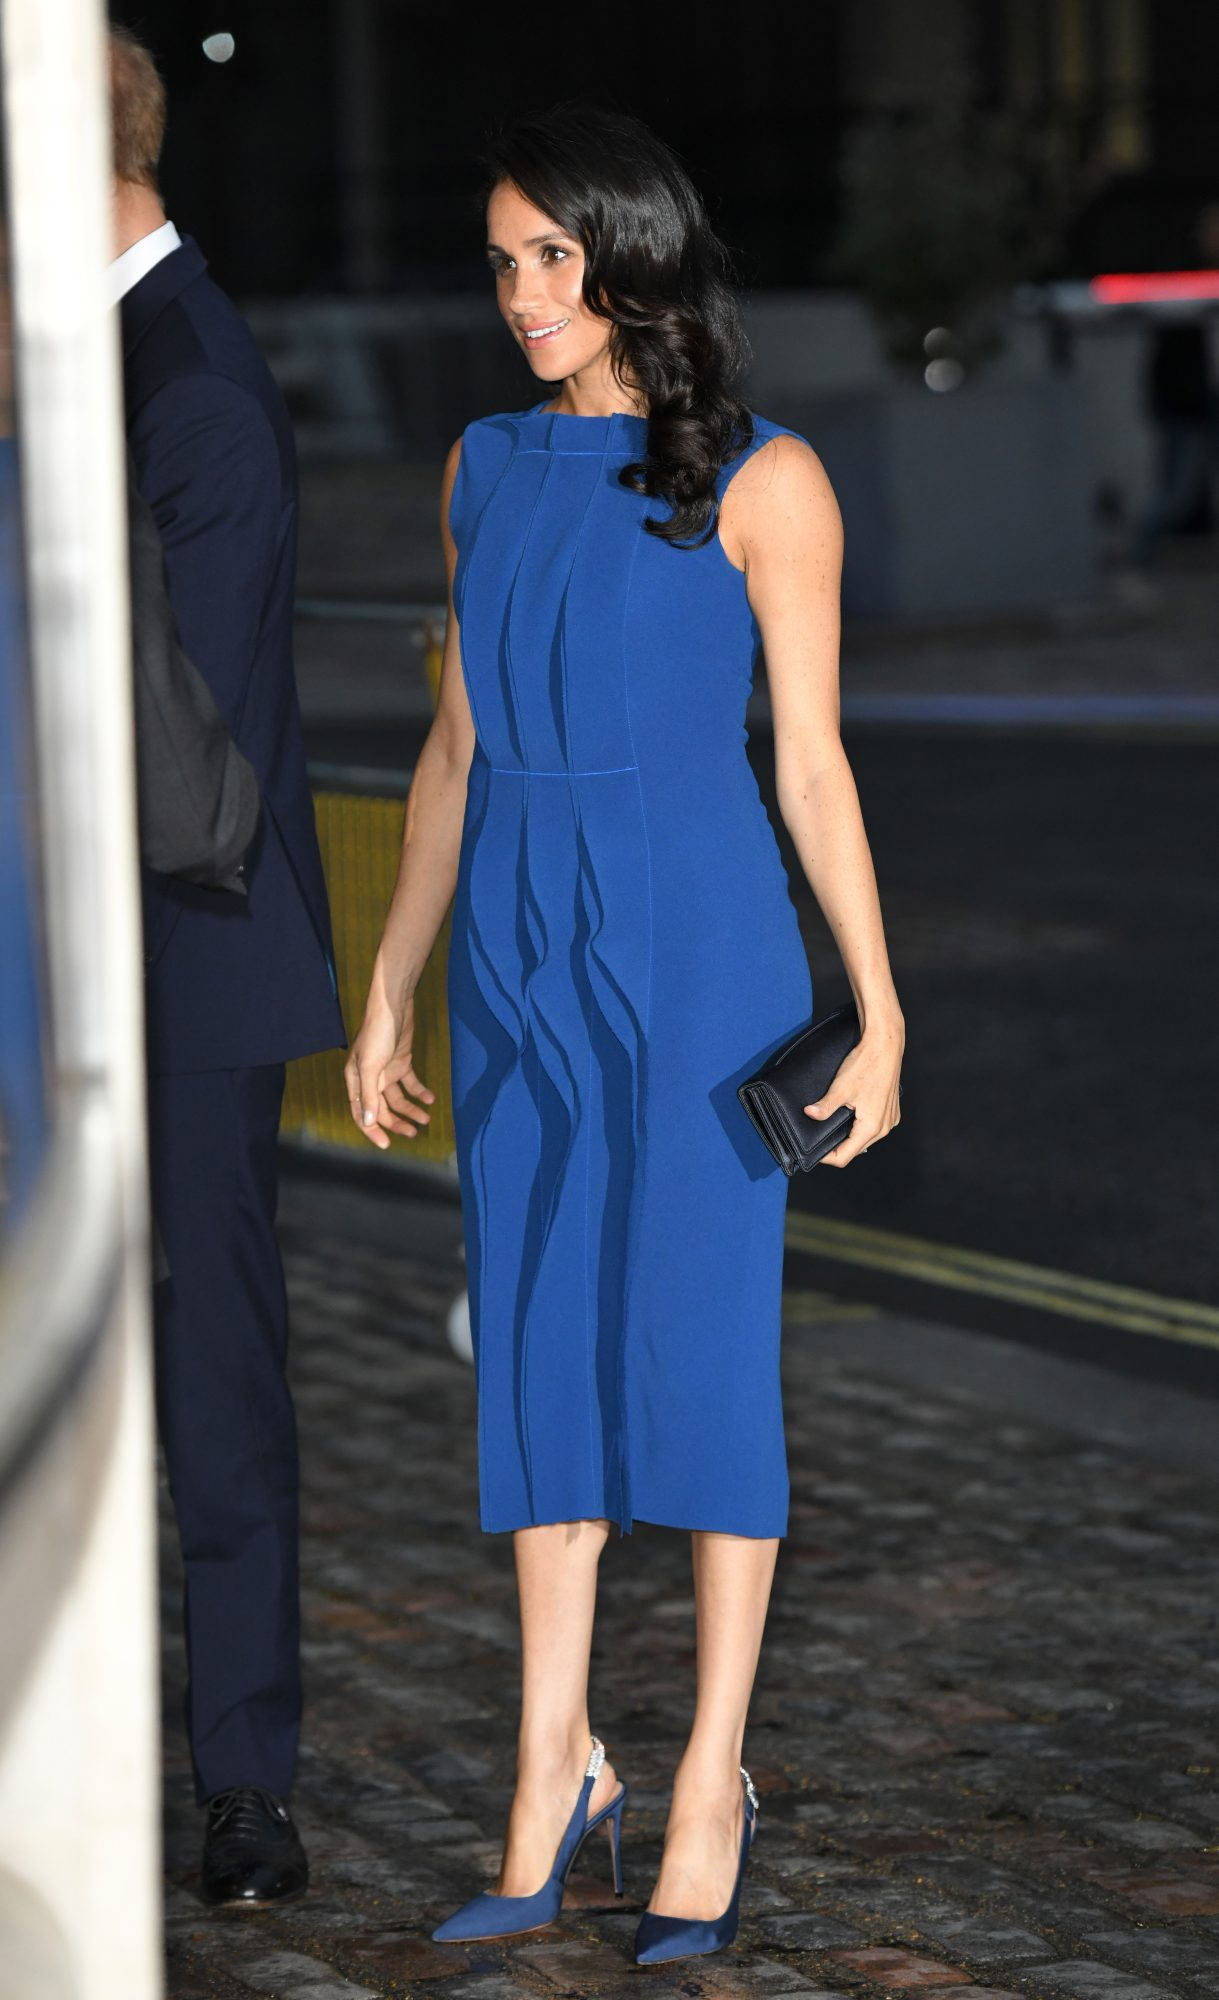 Meghan Markle Maternity Style - Embed